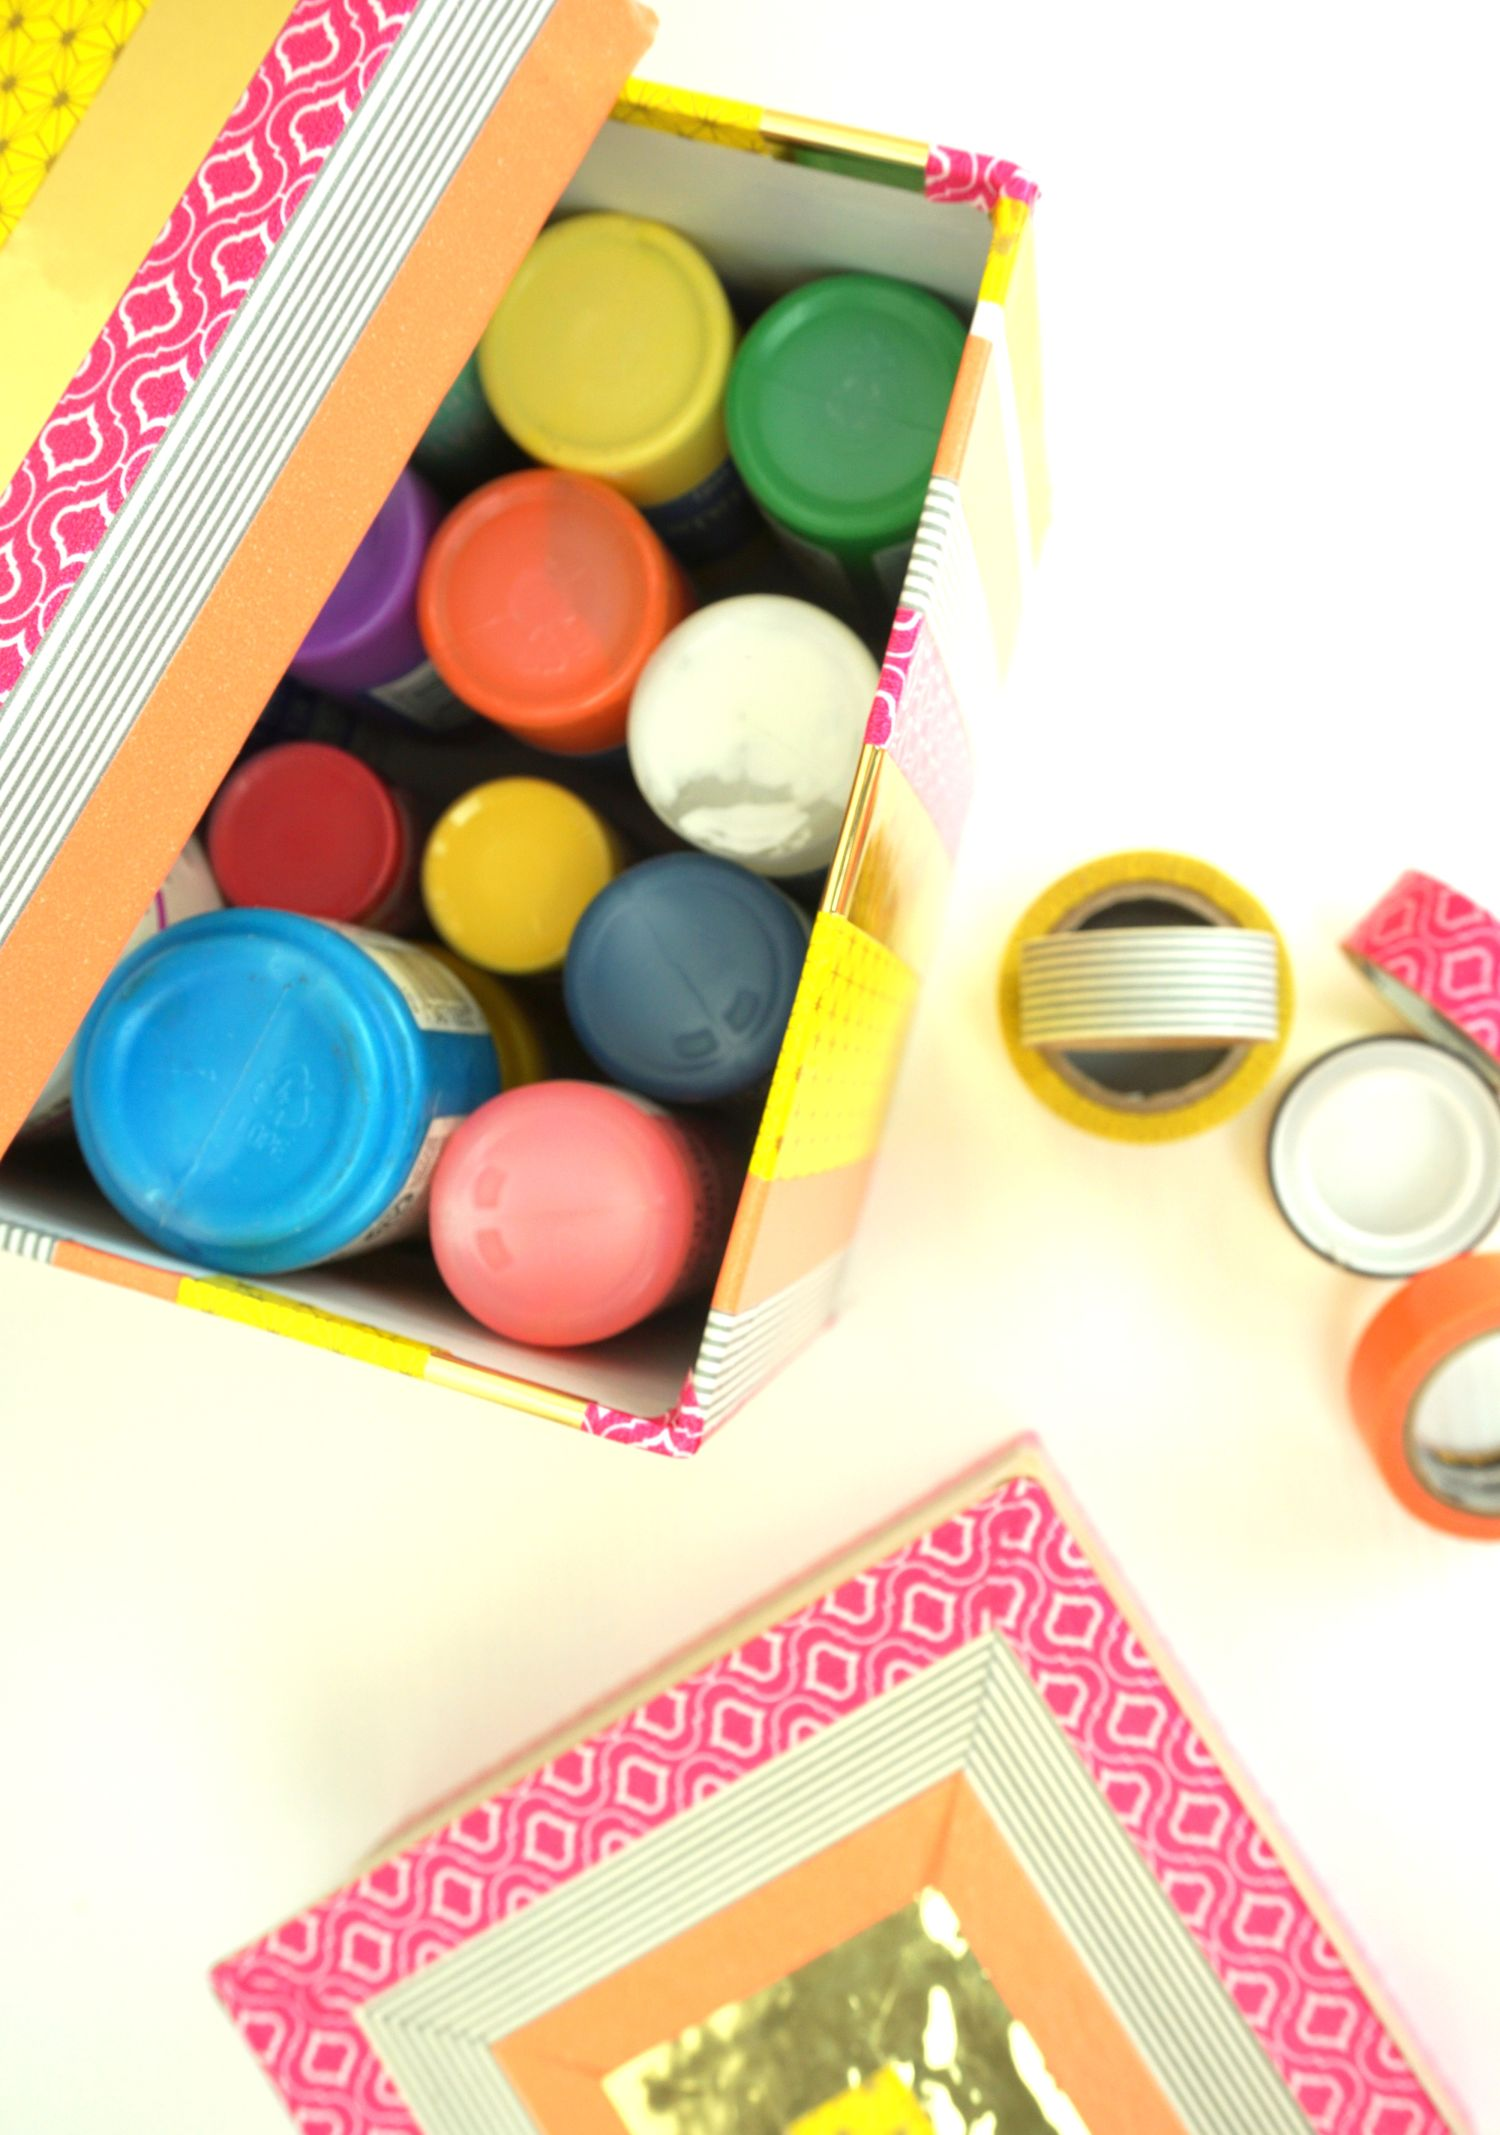 Colorful-Washi-Tape-Decorative-Boxes